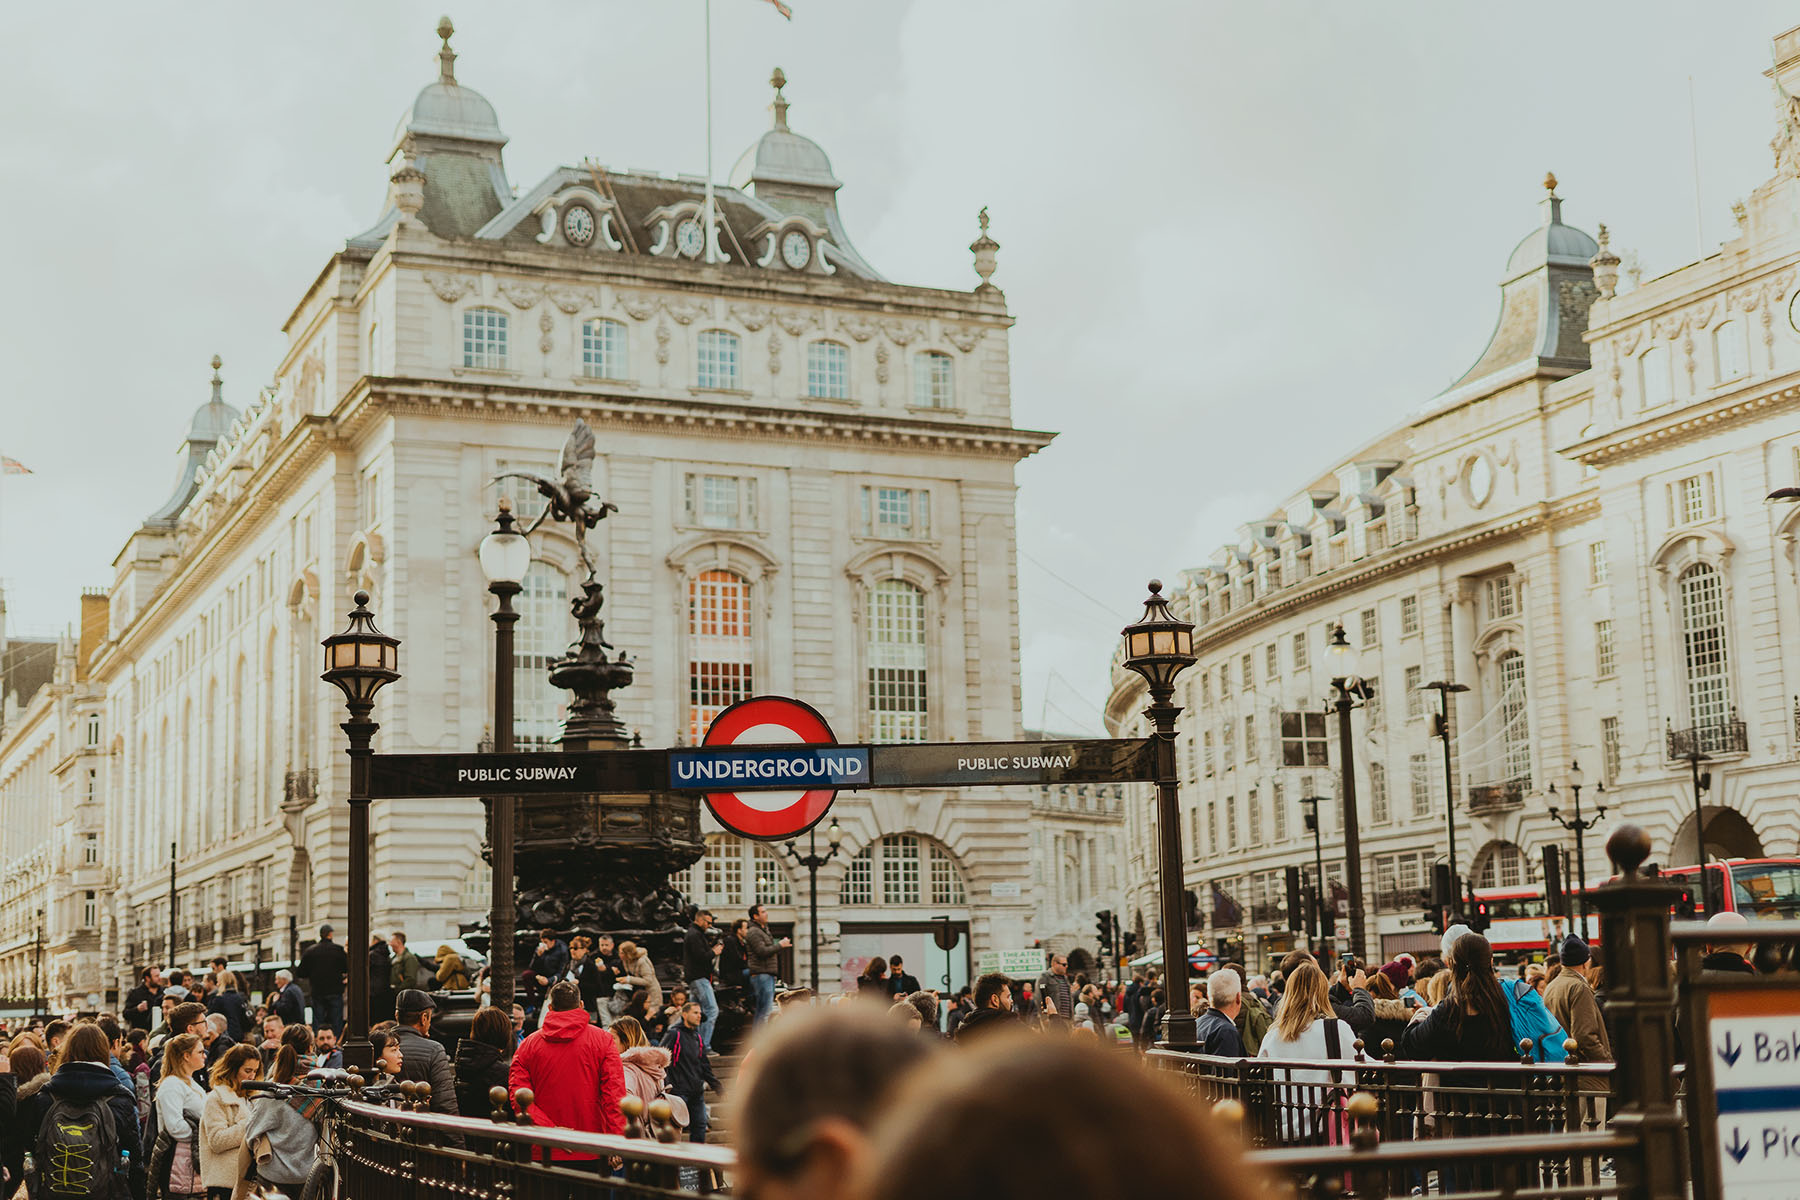 Ragnhild Utne blogg London piccadilly circus United Kingdom England etterlengtet ferie